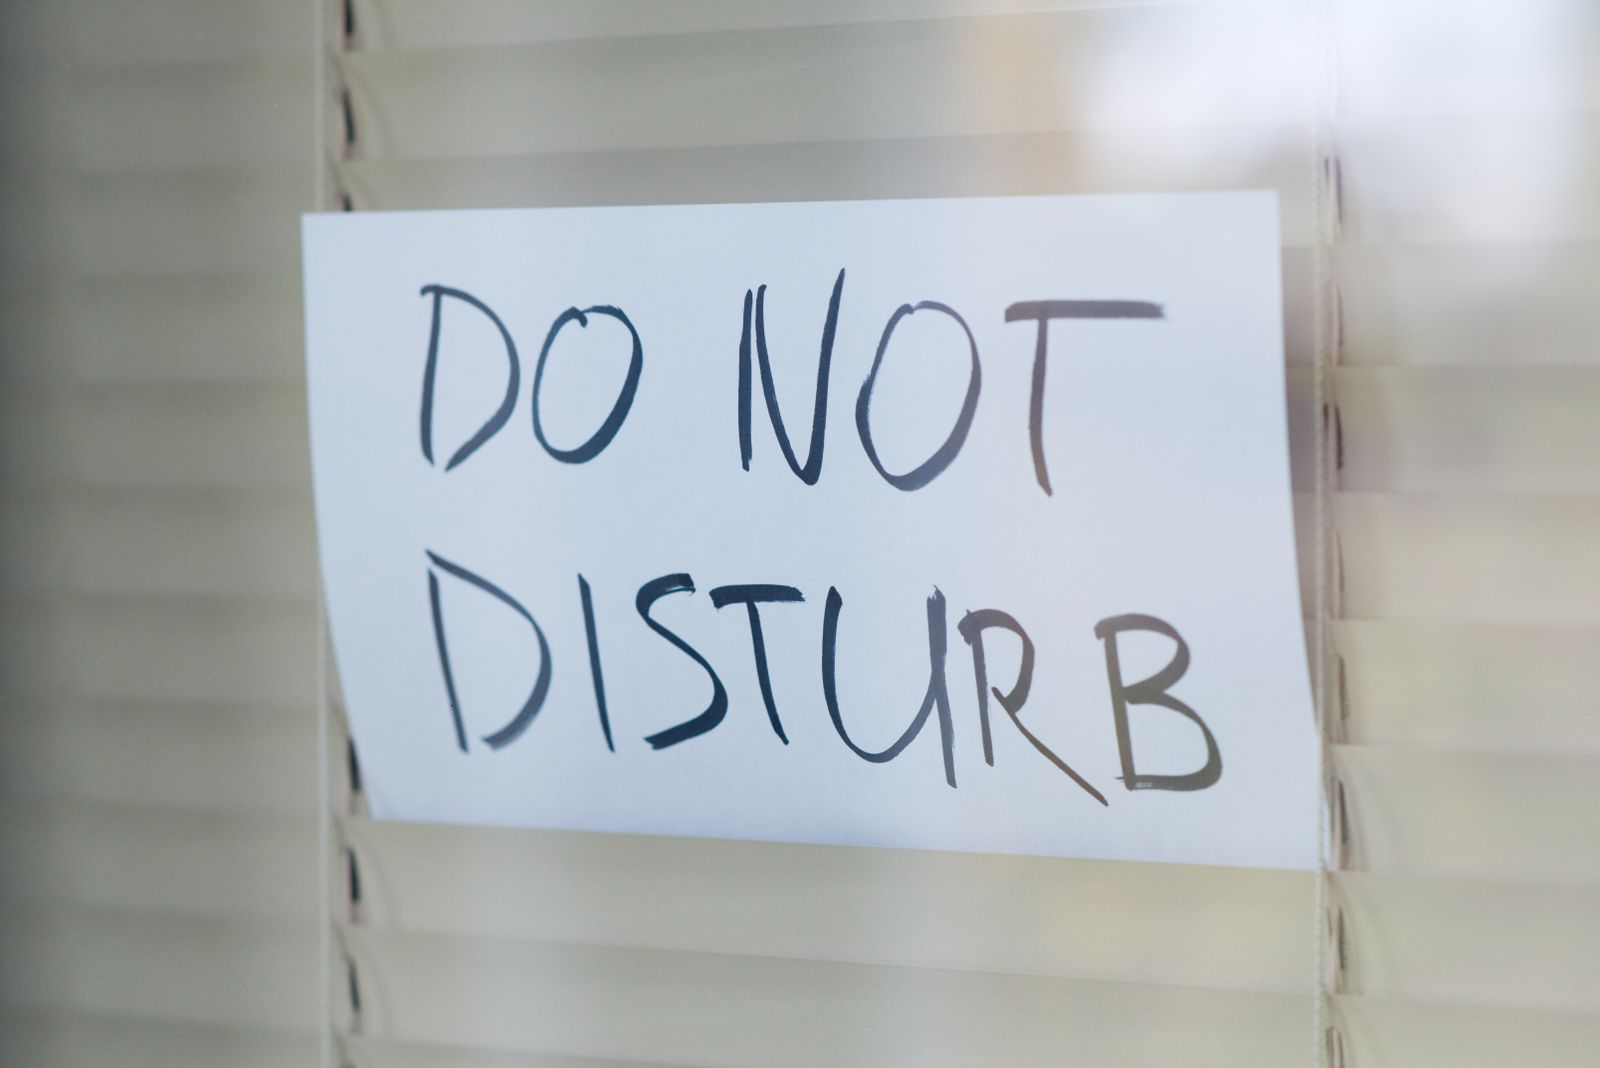 The request not to disturb is seen in a window closed by blinds